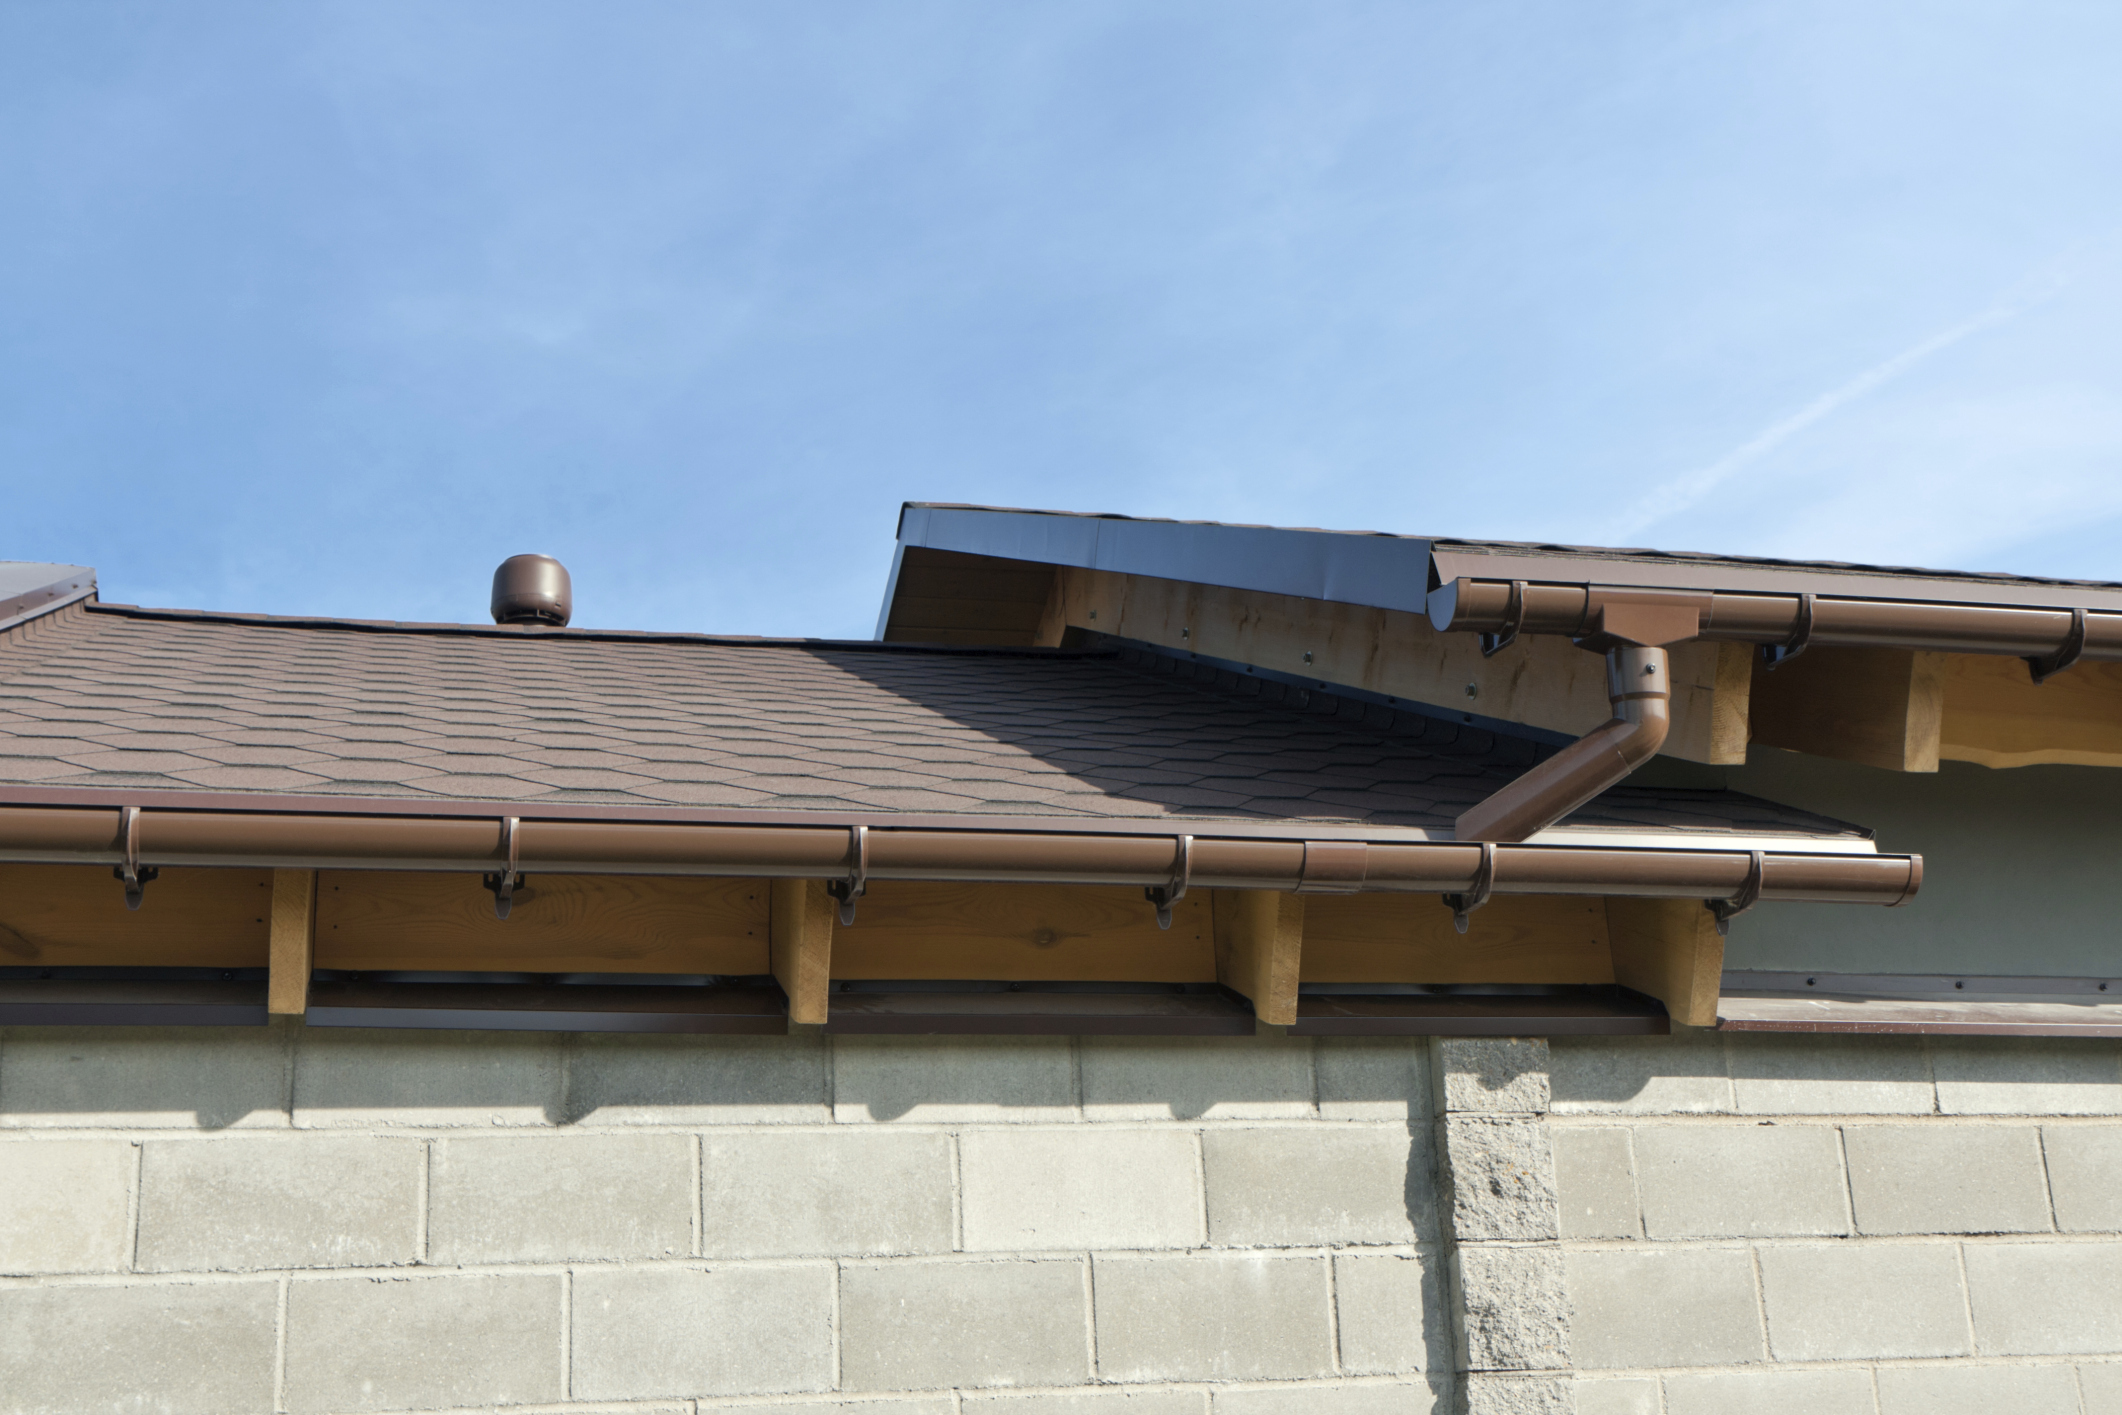 Elegant Matching Gutters To Roofing Designs.